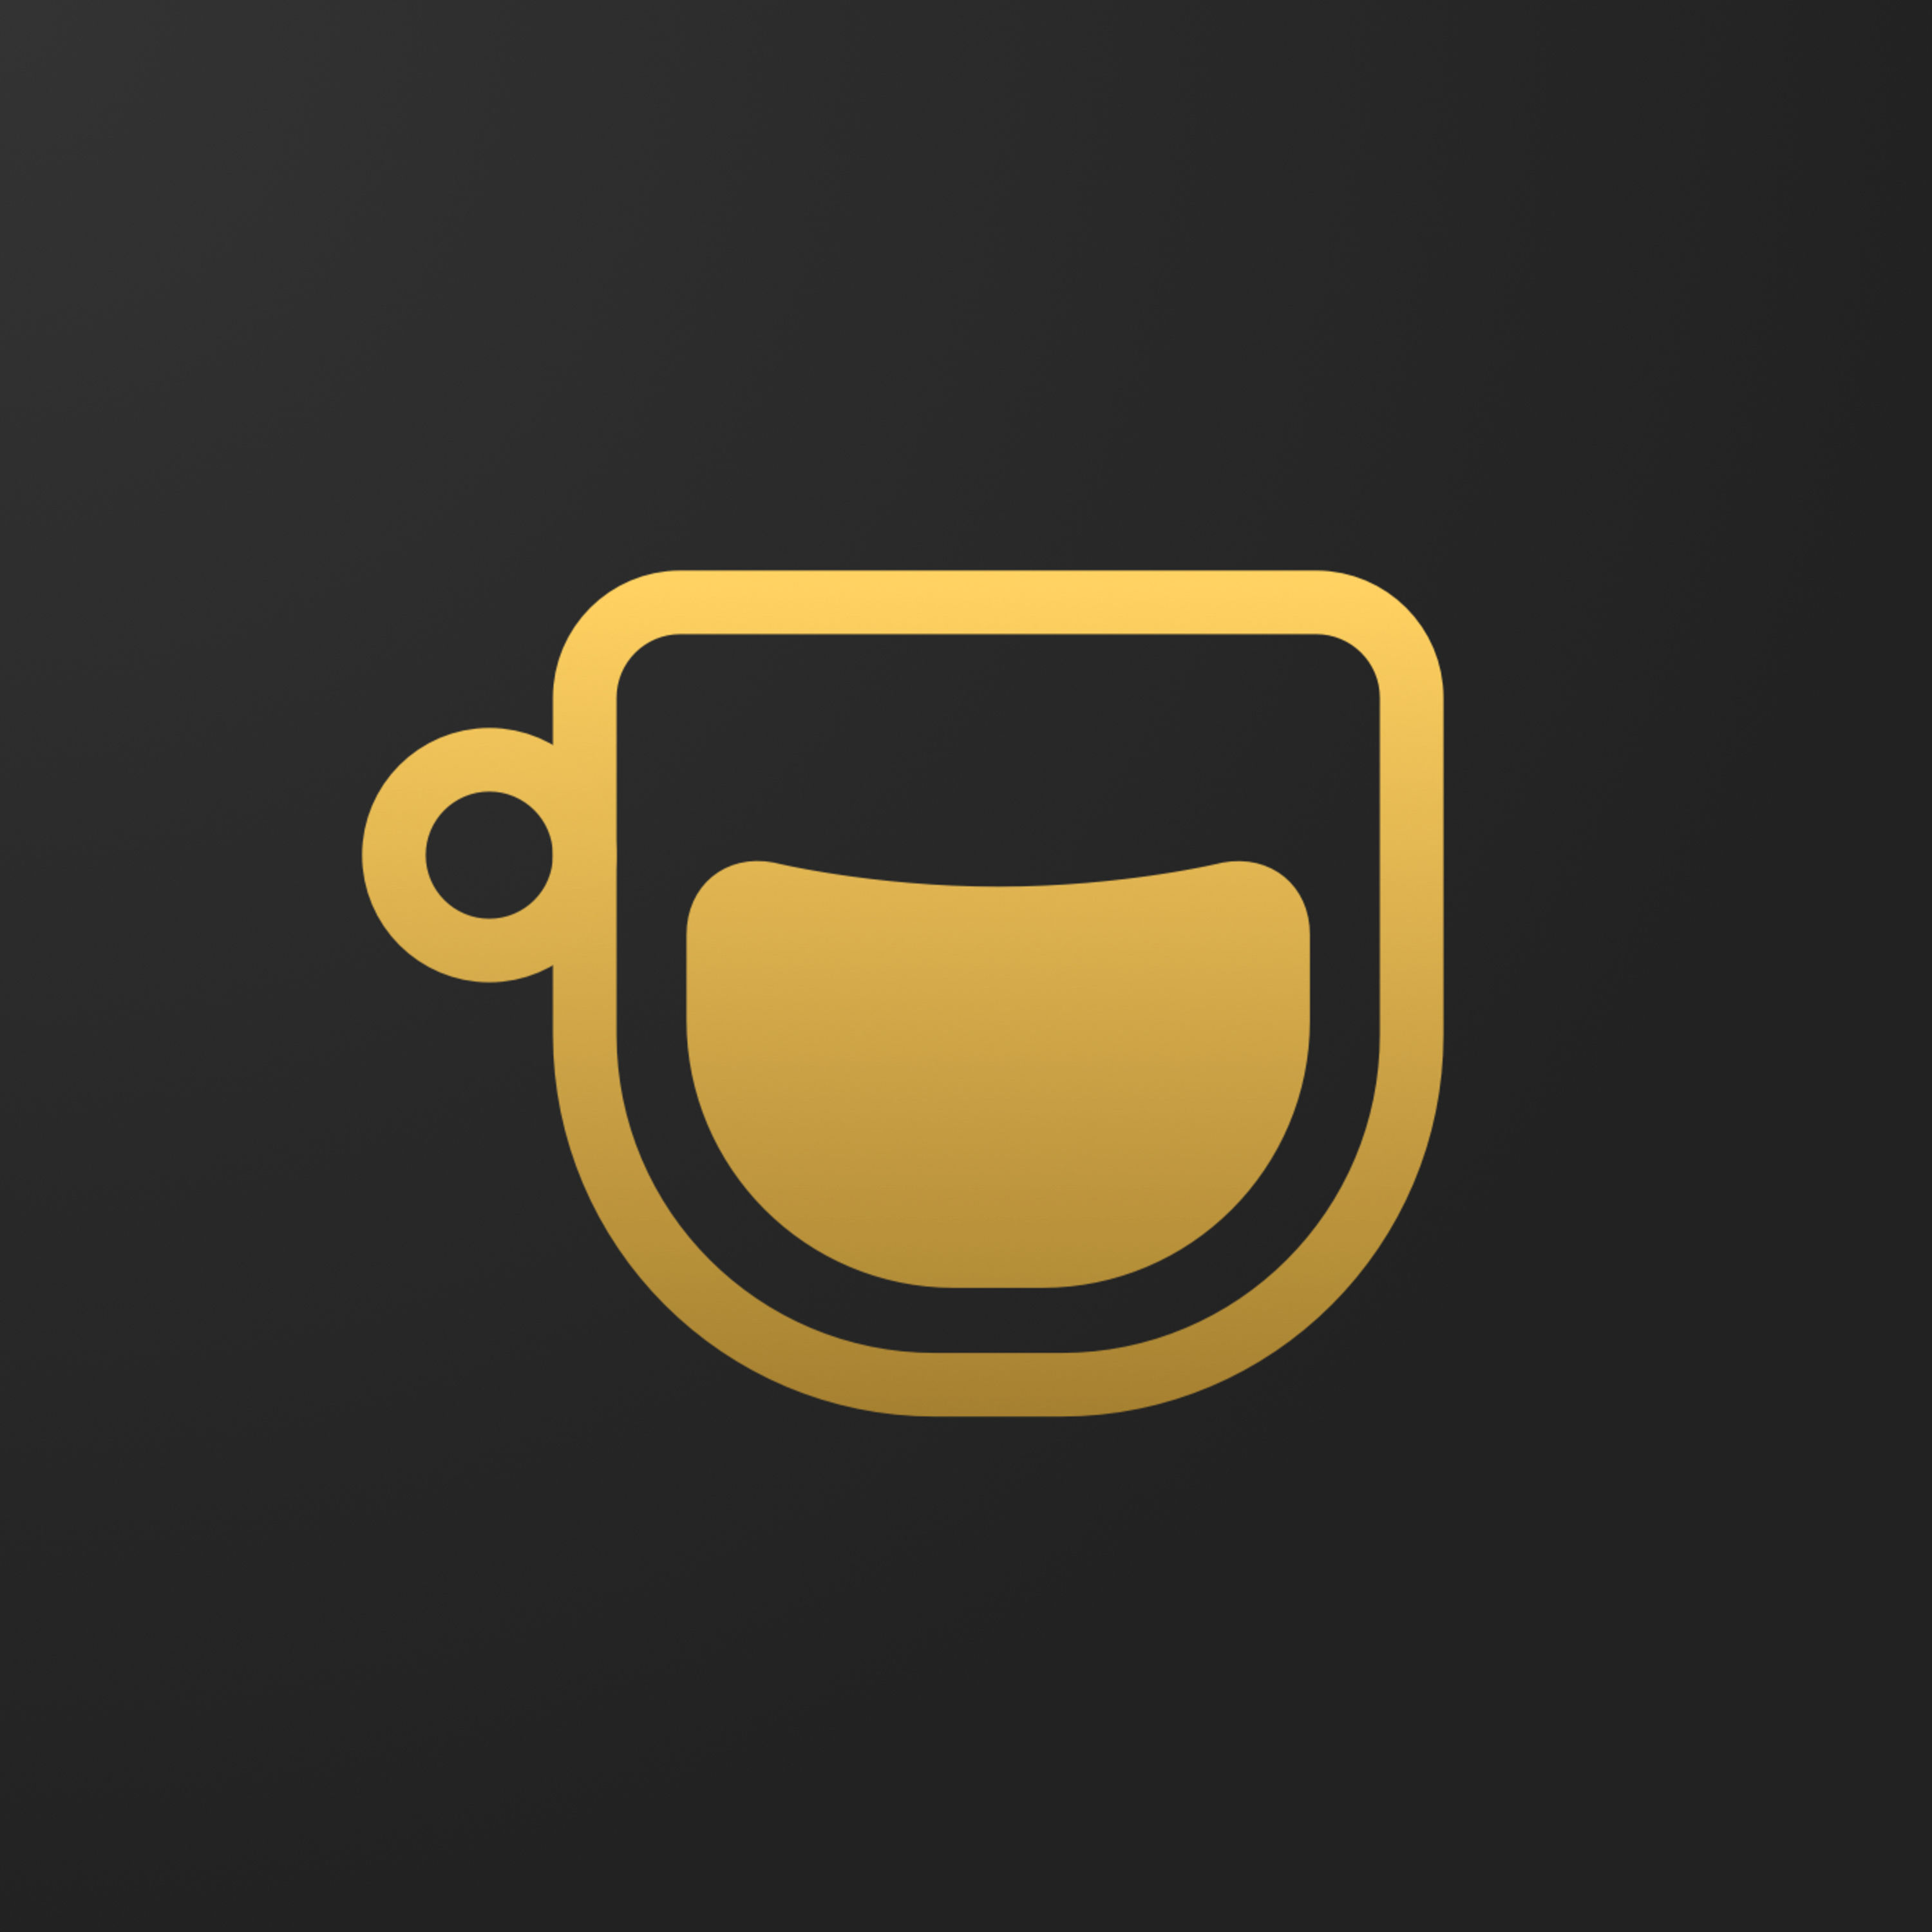 Episode 45 - Cold Coffee Revisited